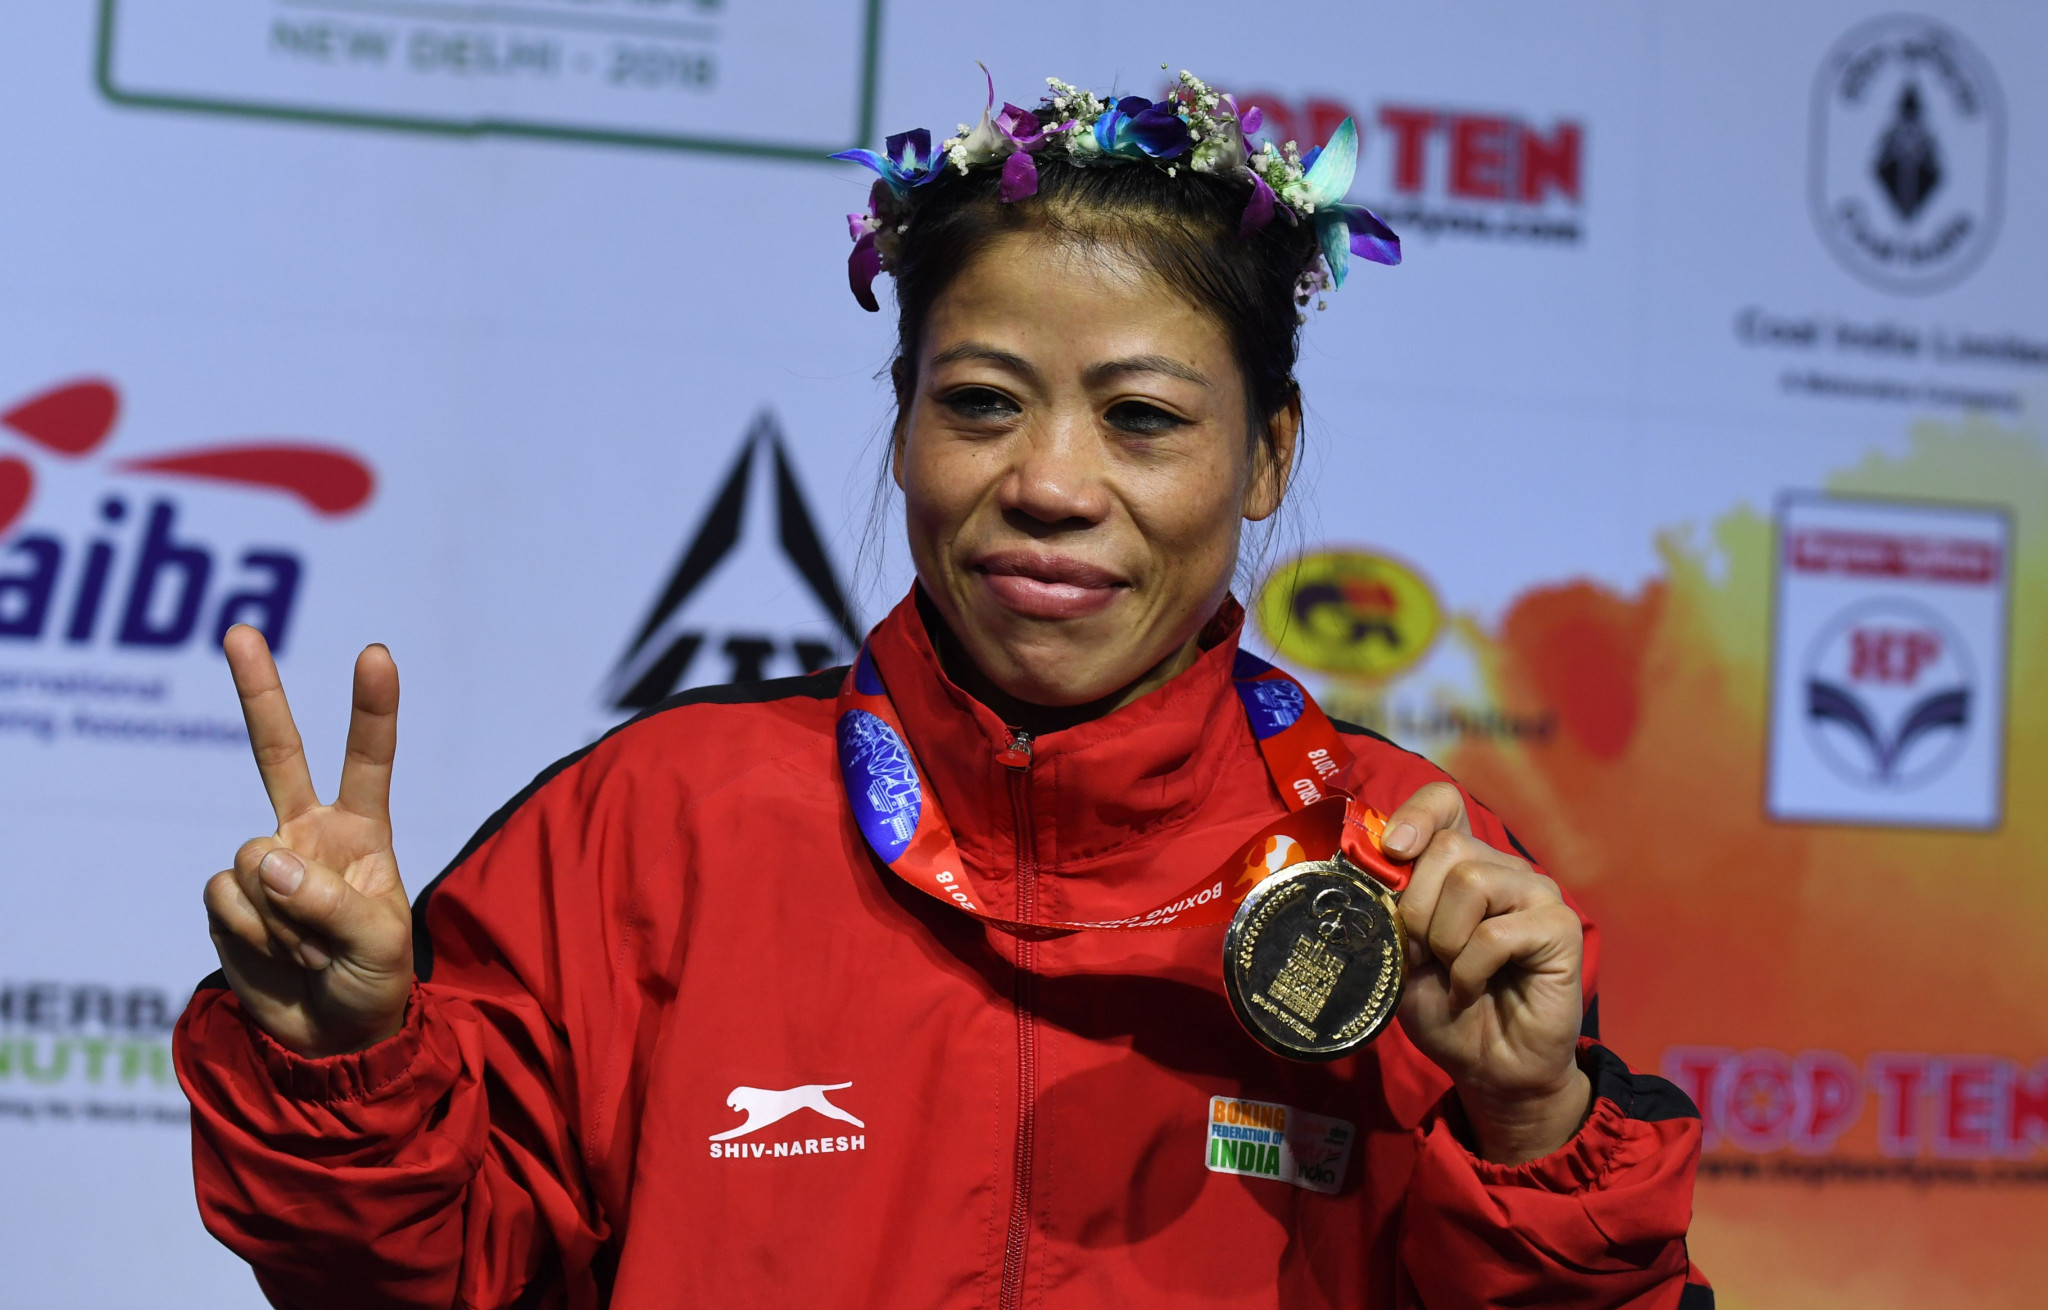 India's Mary Kom will be seeking her seventh world title, this time in the flyweight division ©Getty Images